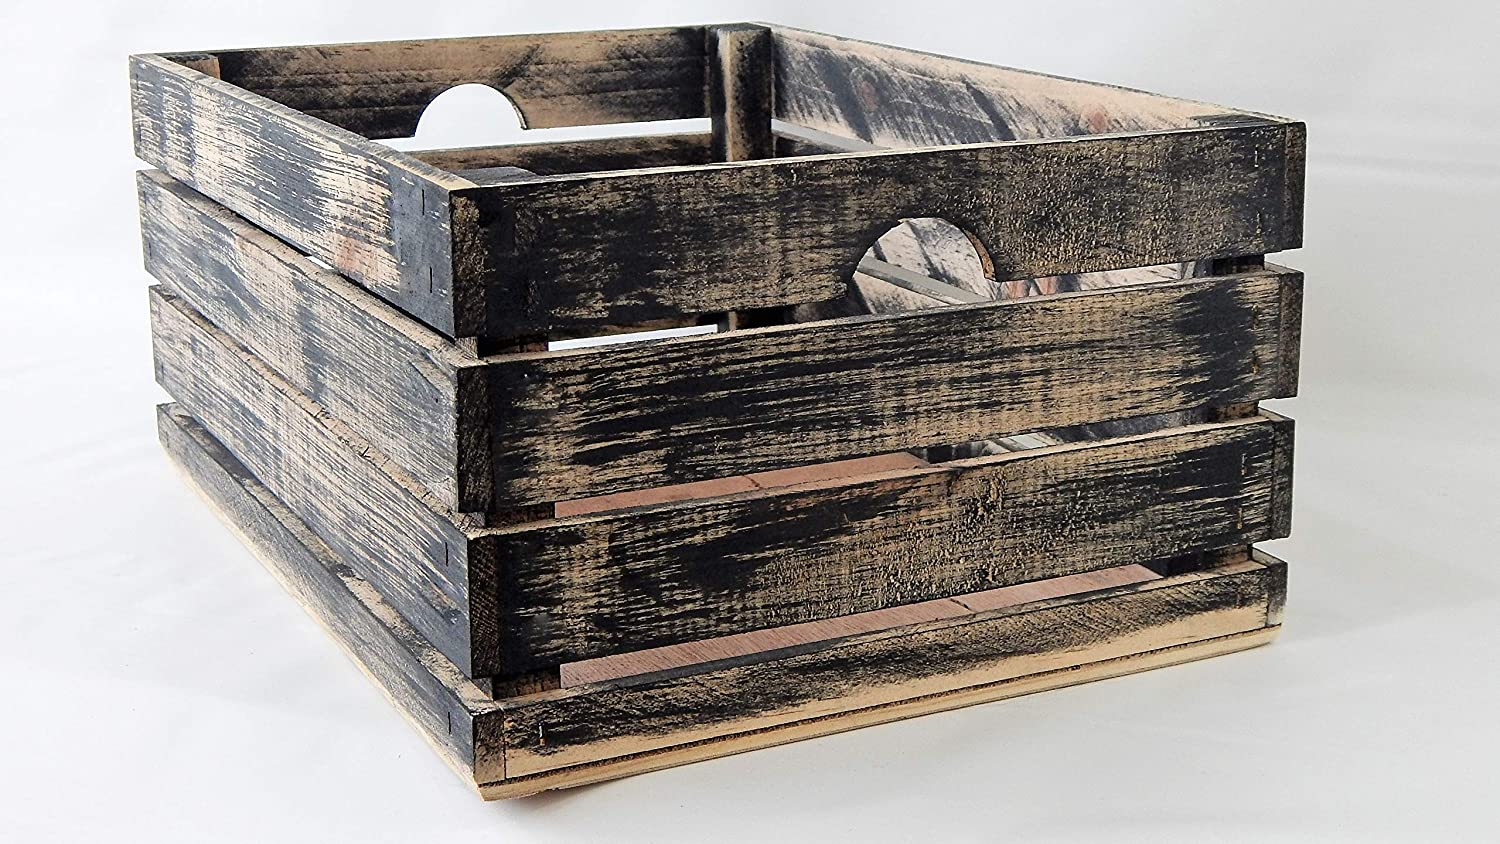 At Home on Main Handmade Rustic Crates (Large) (Black)